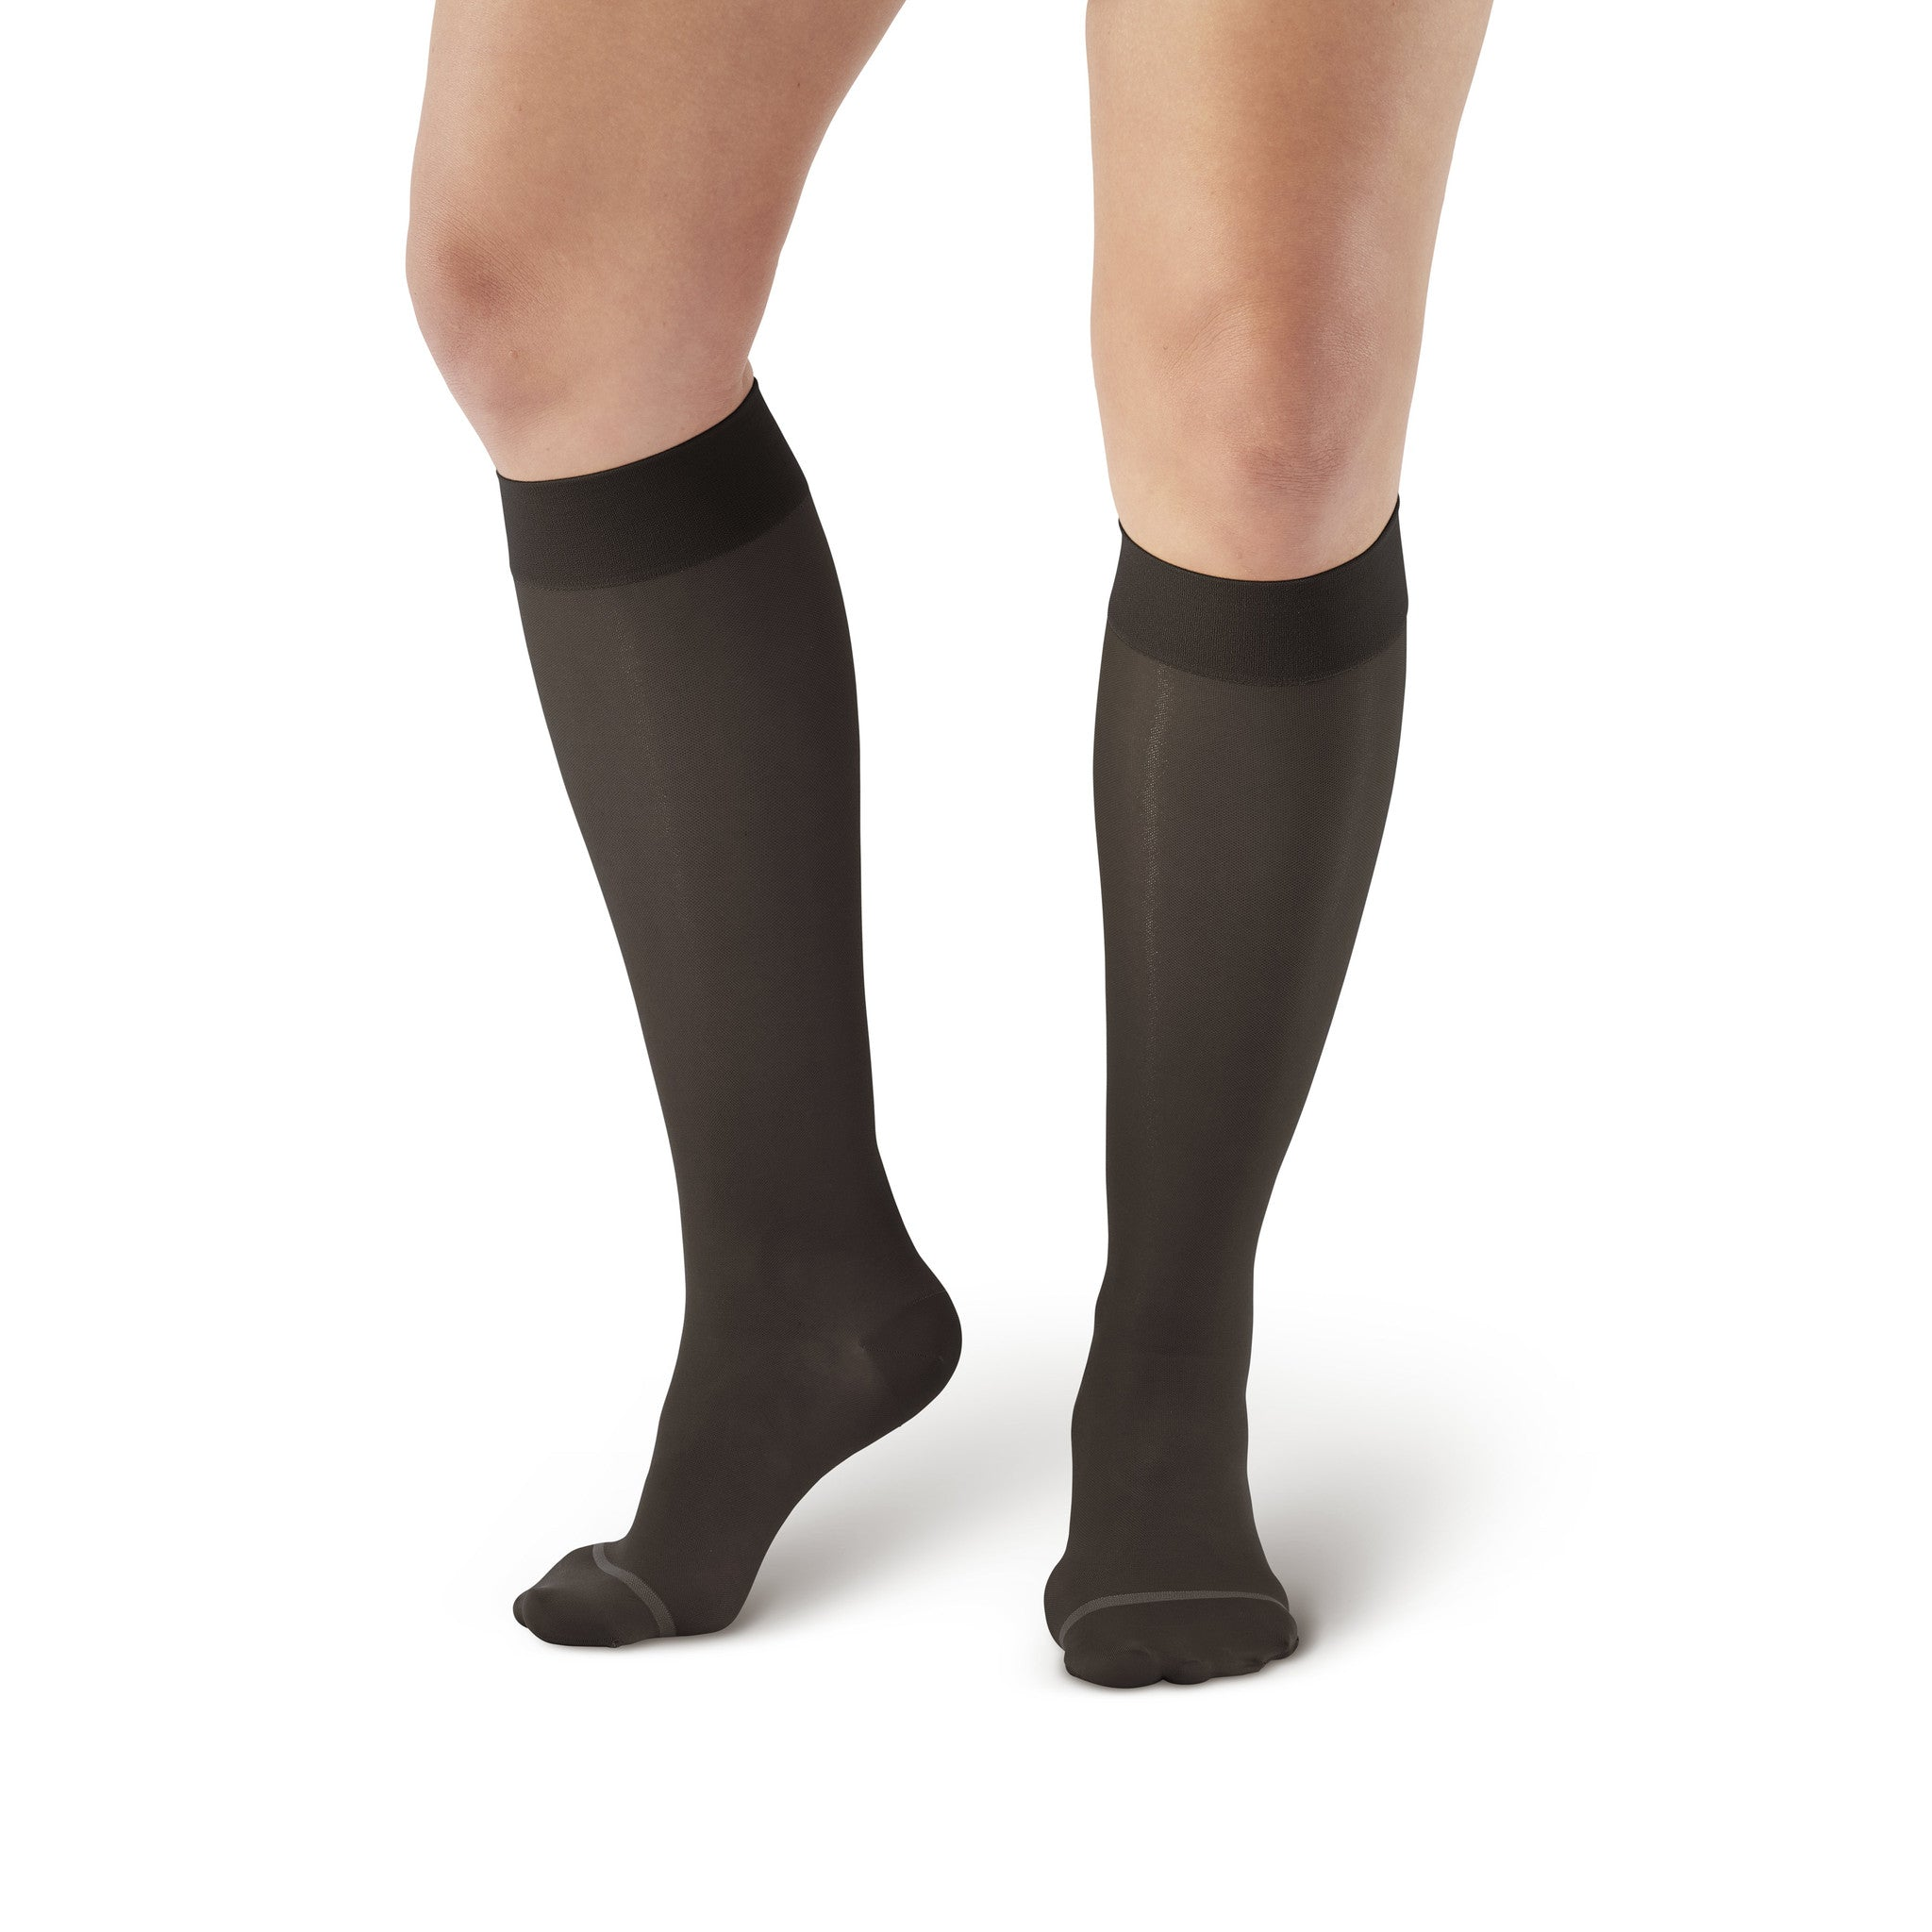 f8b90c3a6 ... AW Style 16 Sheer Support Closed Toe Knee Highs - 15-20 mmHg - Black ...